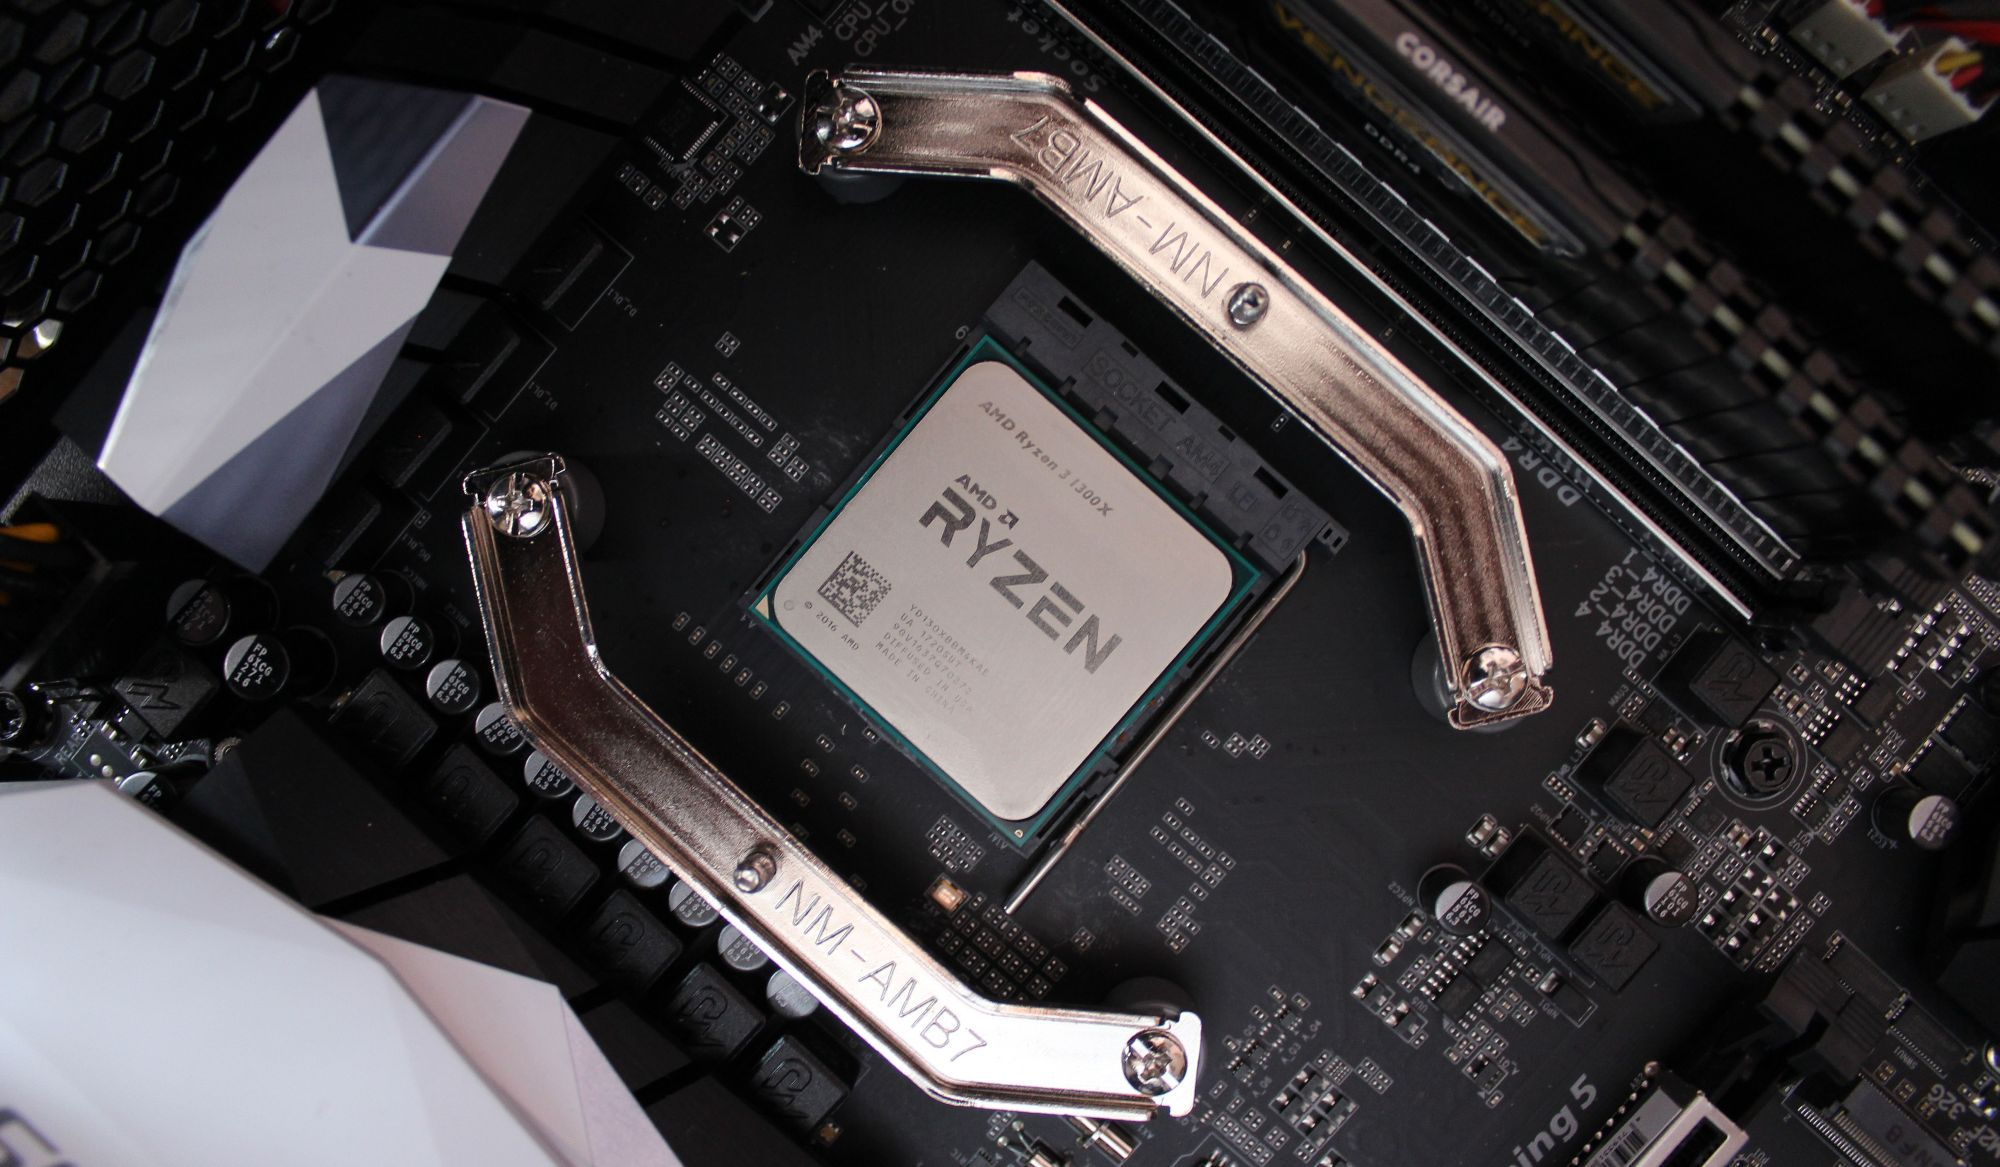 AMD Ryzen powers to best PC component of 2017 award honours